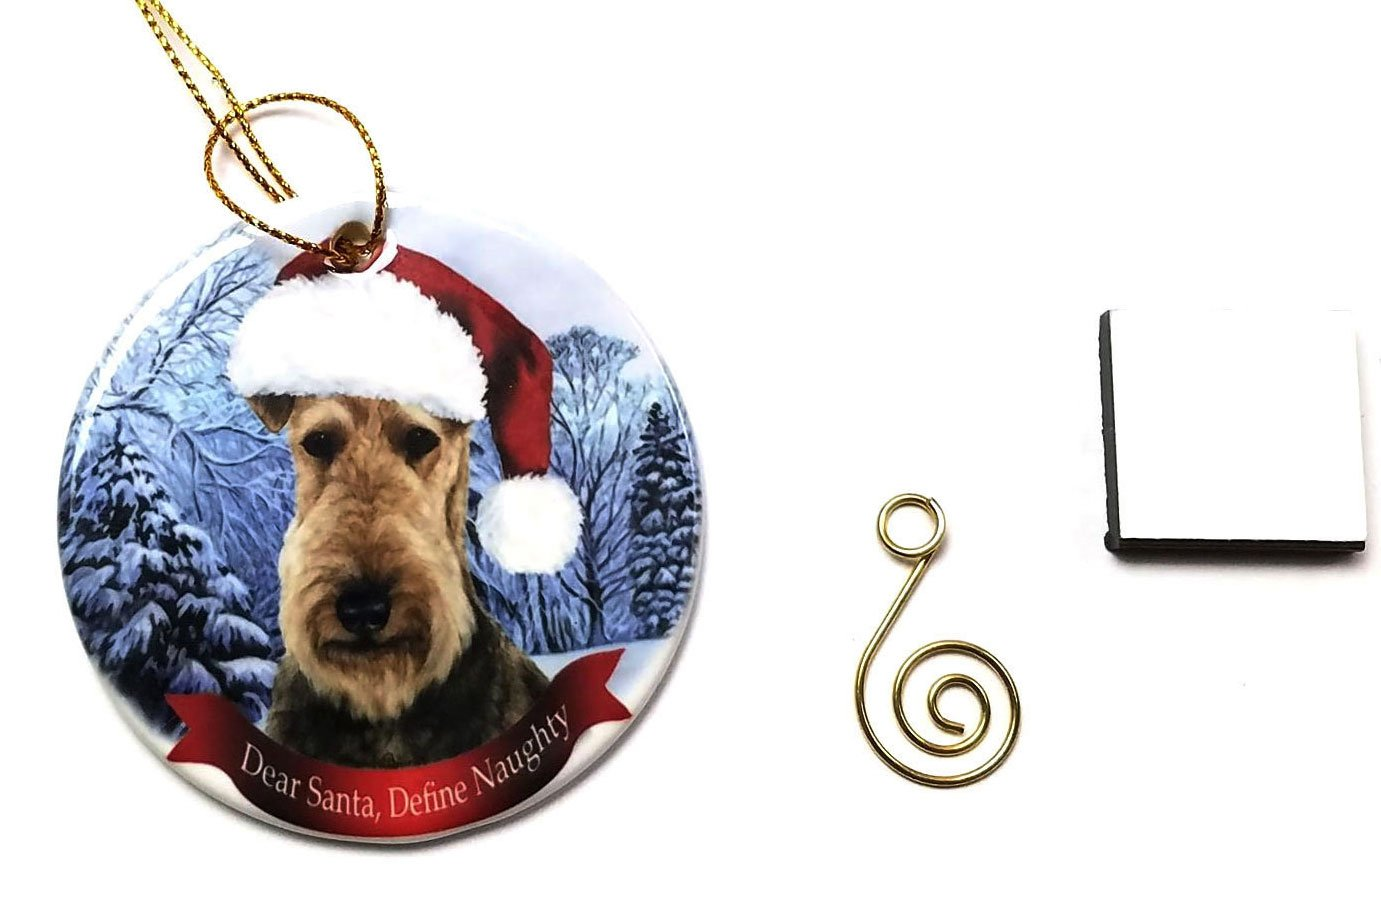 Imprints-Plus-Dog-Christmas-Ornament-3-Porcelain-Gift-Boxed-with-Tree-Hook-and-Magnet-Pet-Holiday-Decoration-Bundle-HO-001